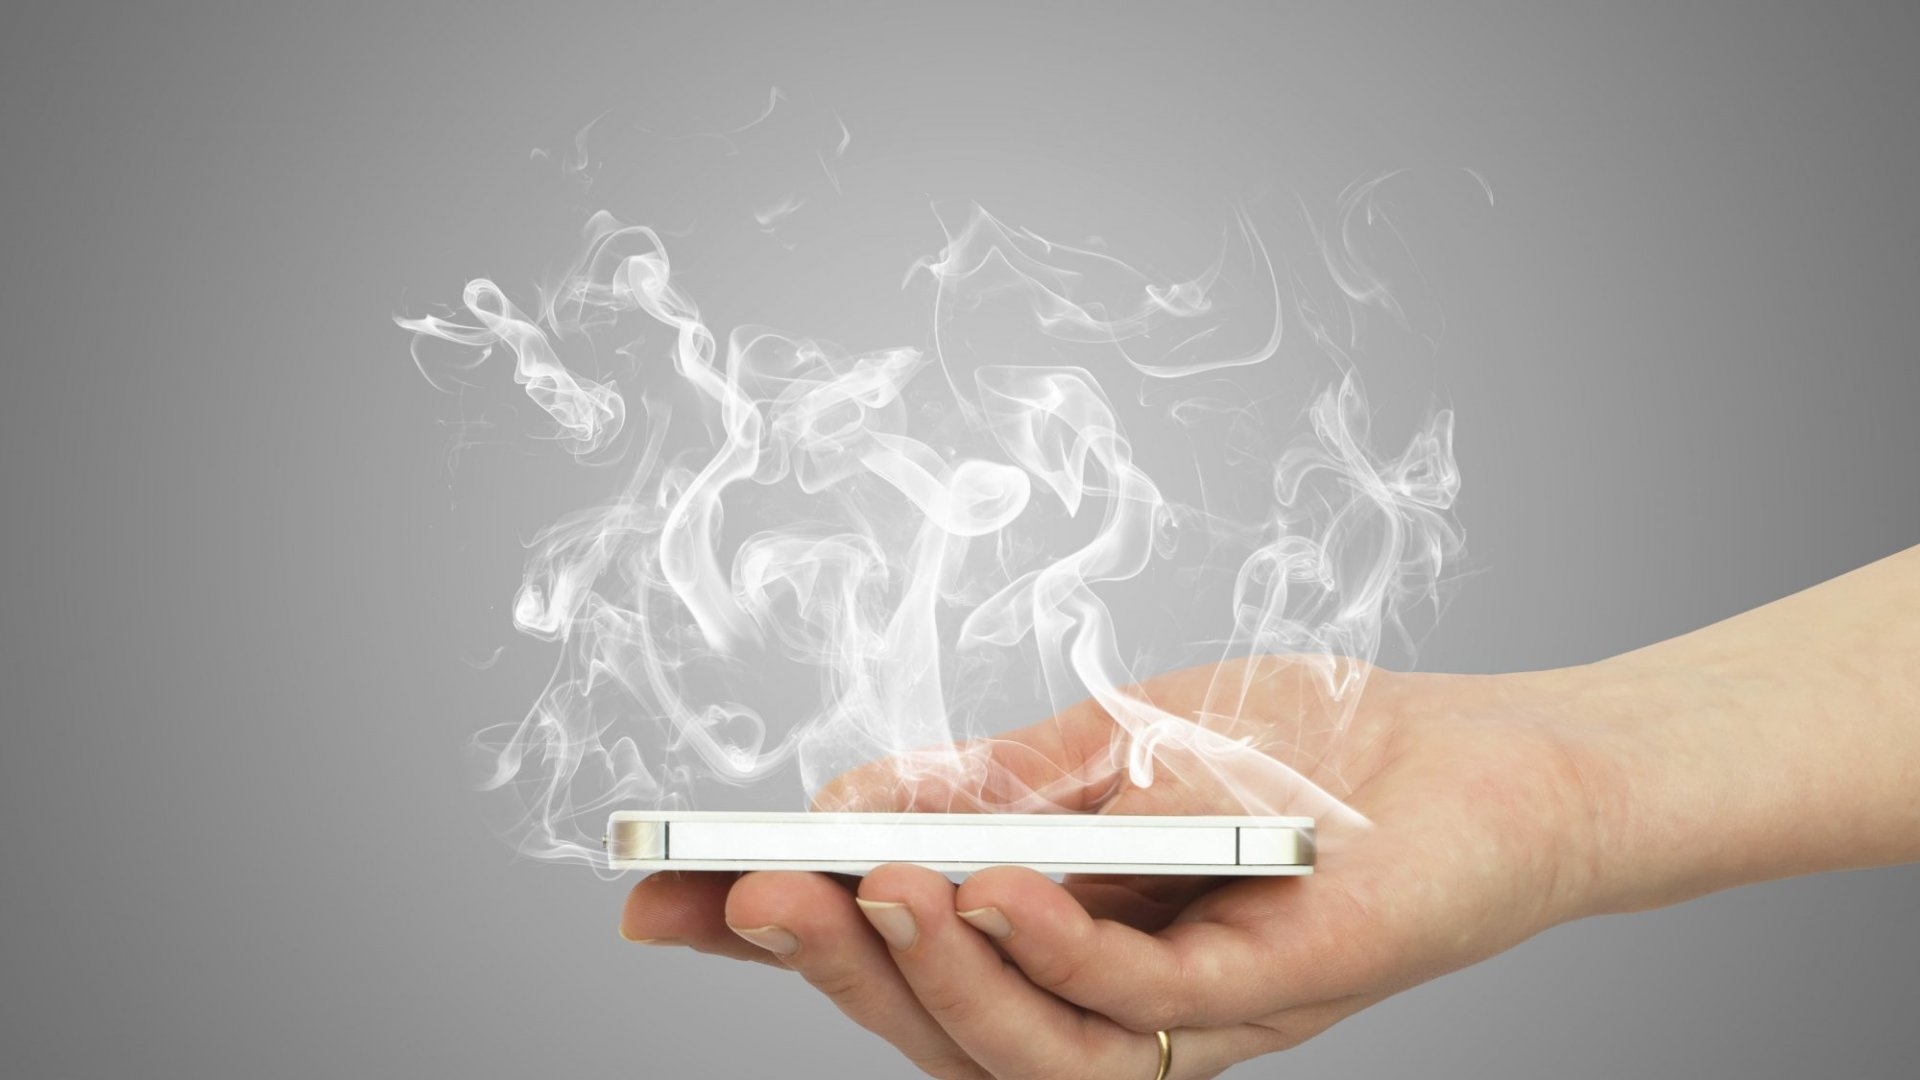 Quitting Smoking? There's an App for That.